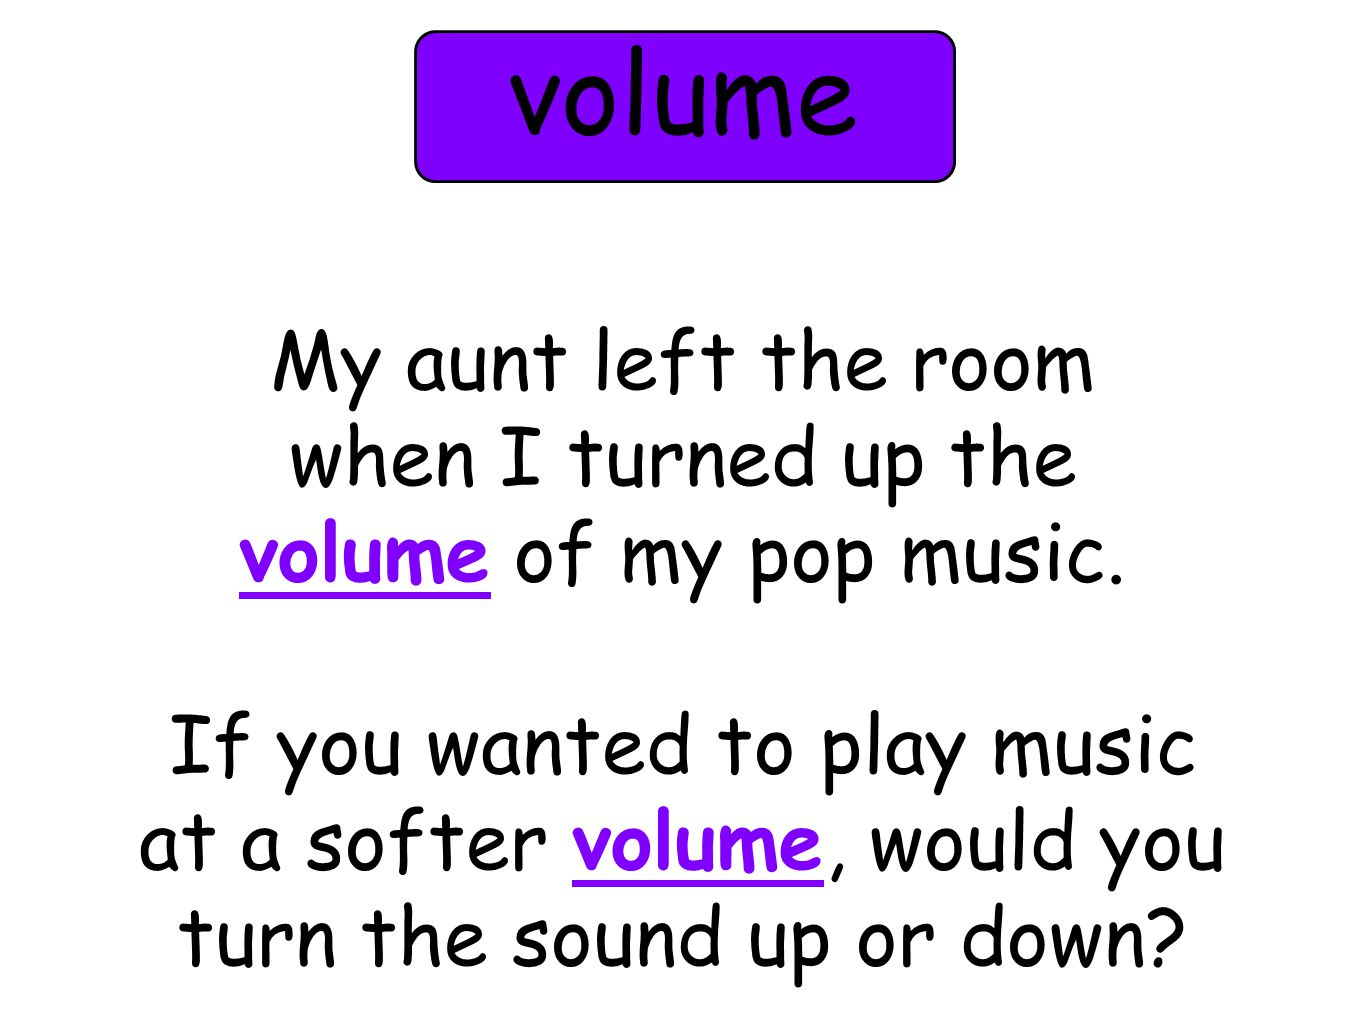 My aunt left the room when I turned up the volume of my pop music.